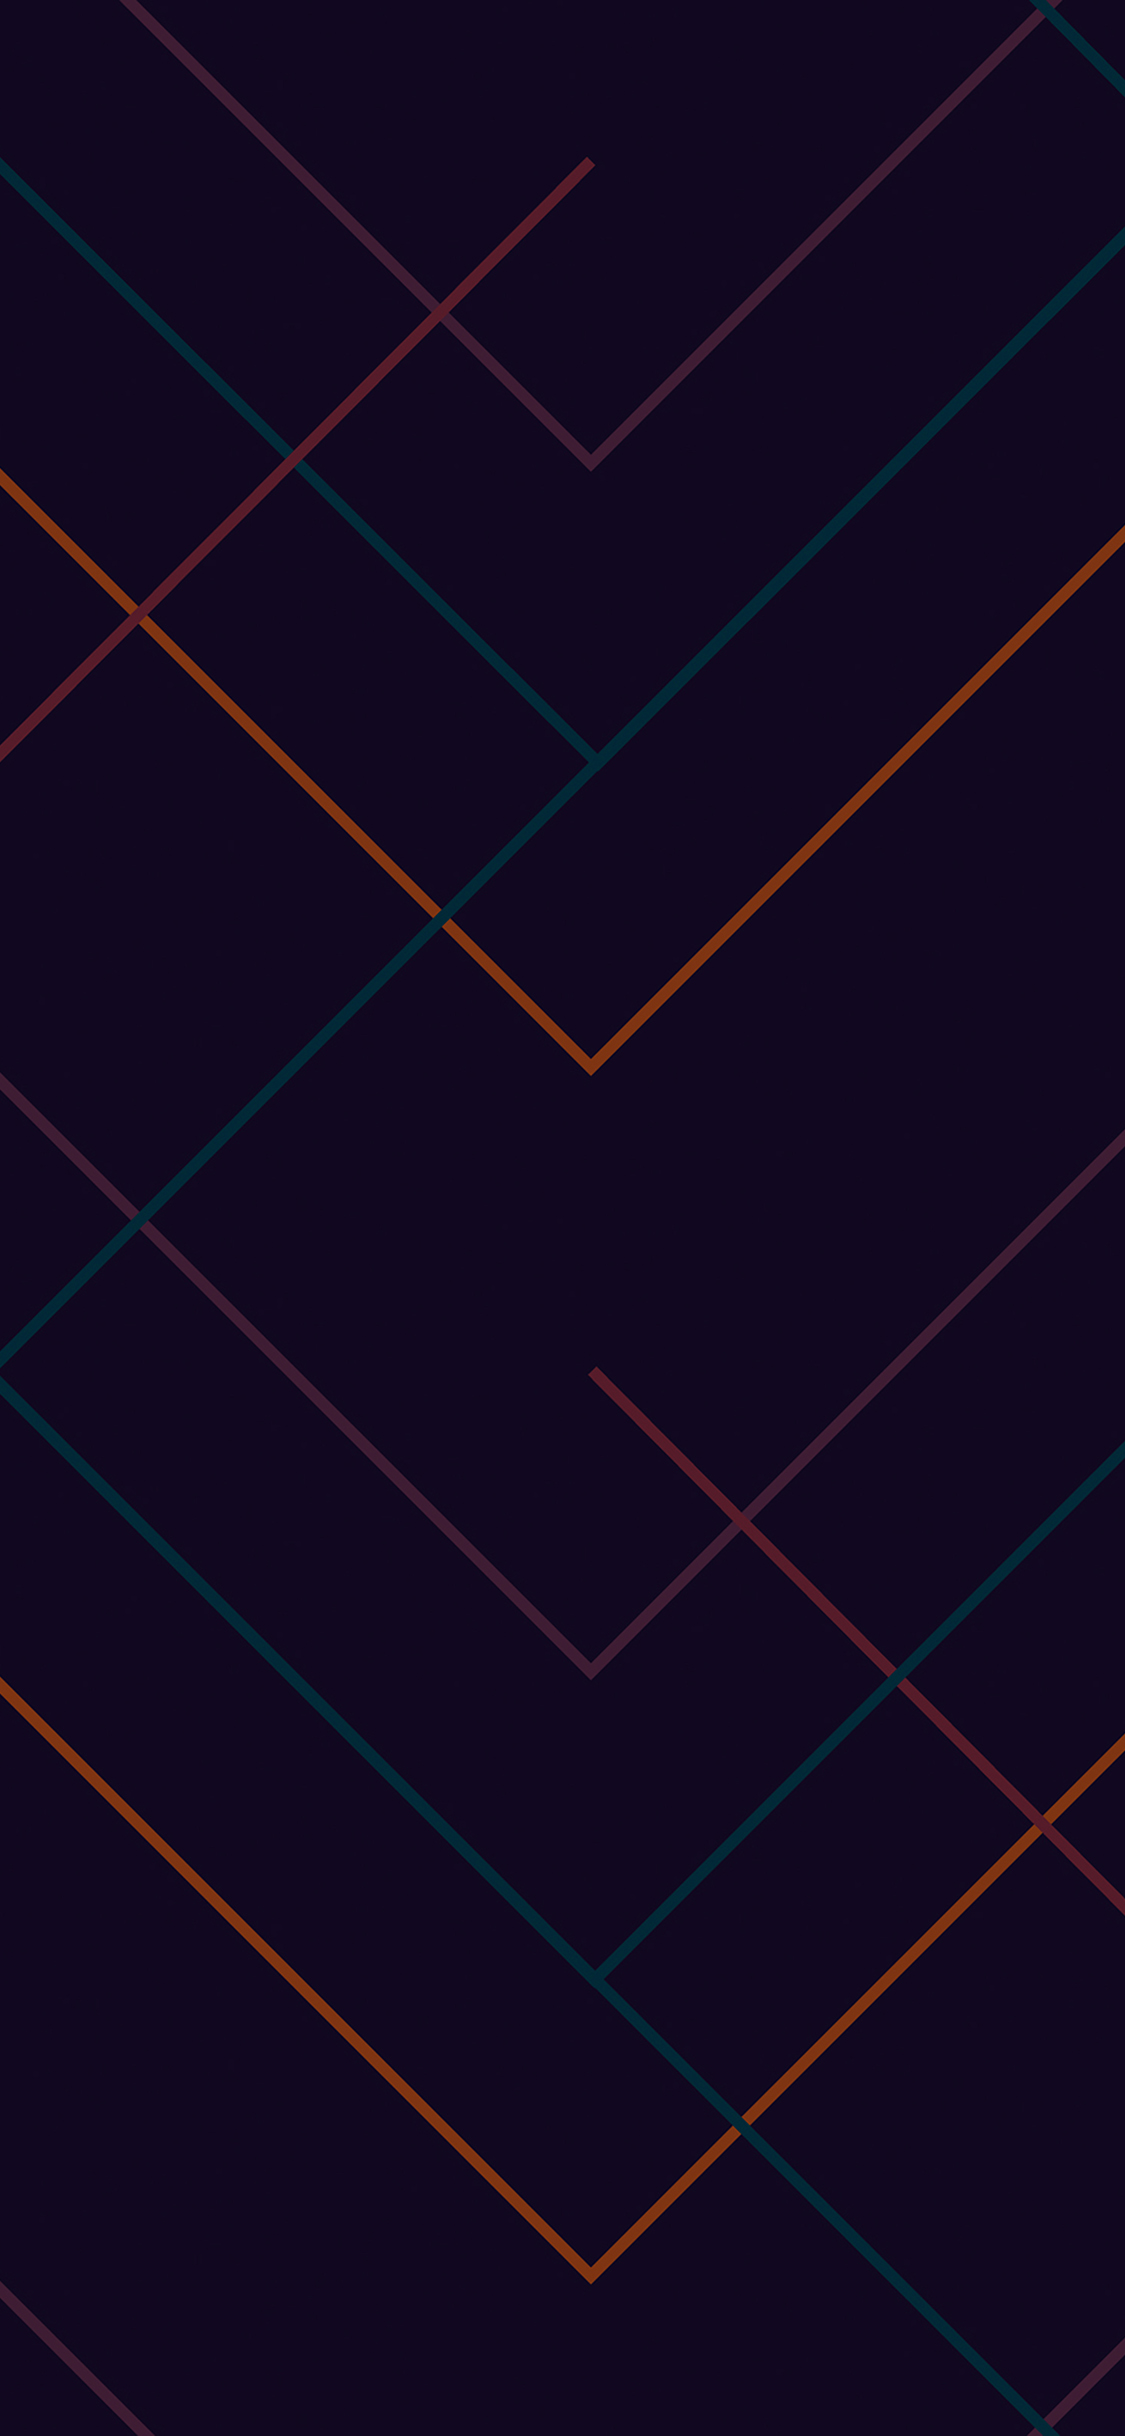 papers.co vd52 abstract dark geometric line pattern 41 iphone wallpaper